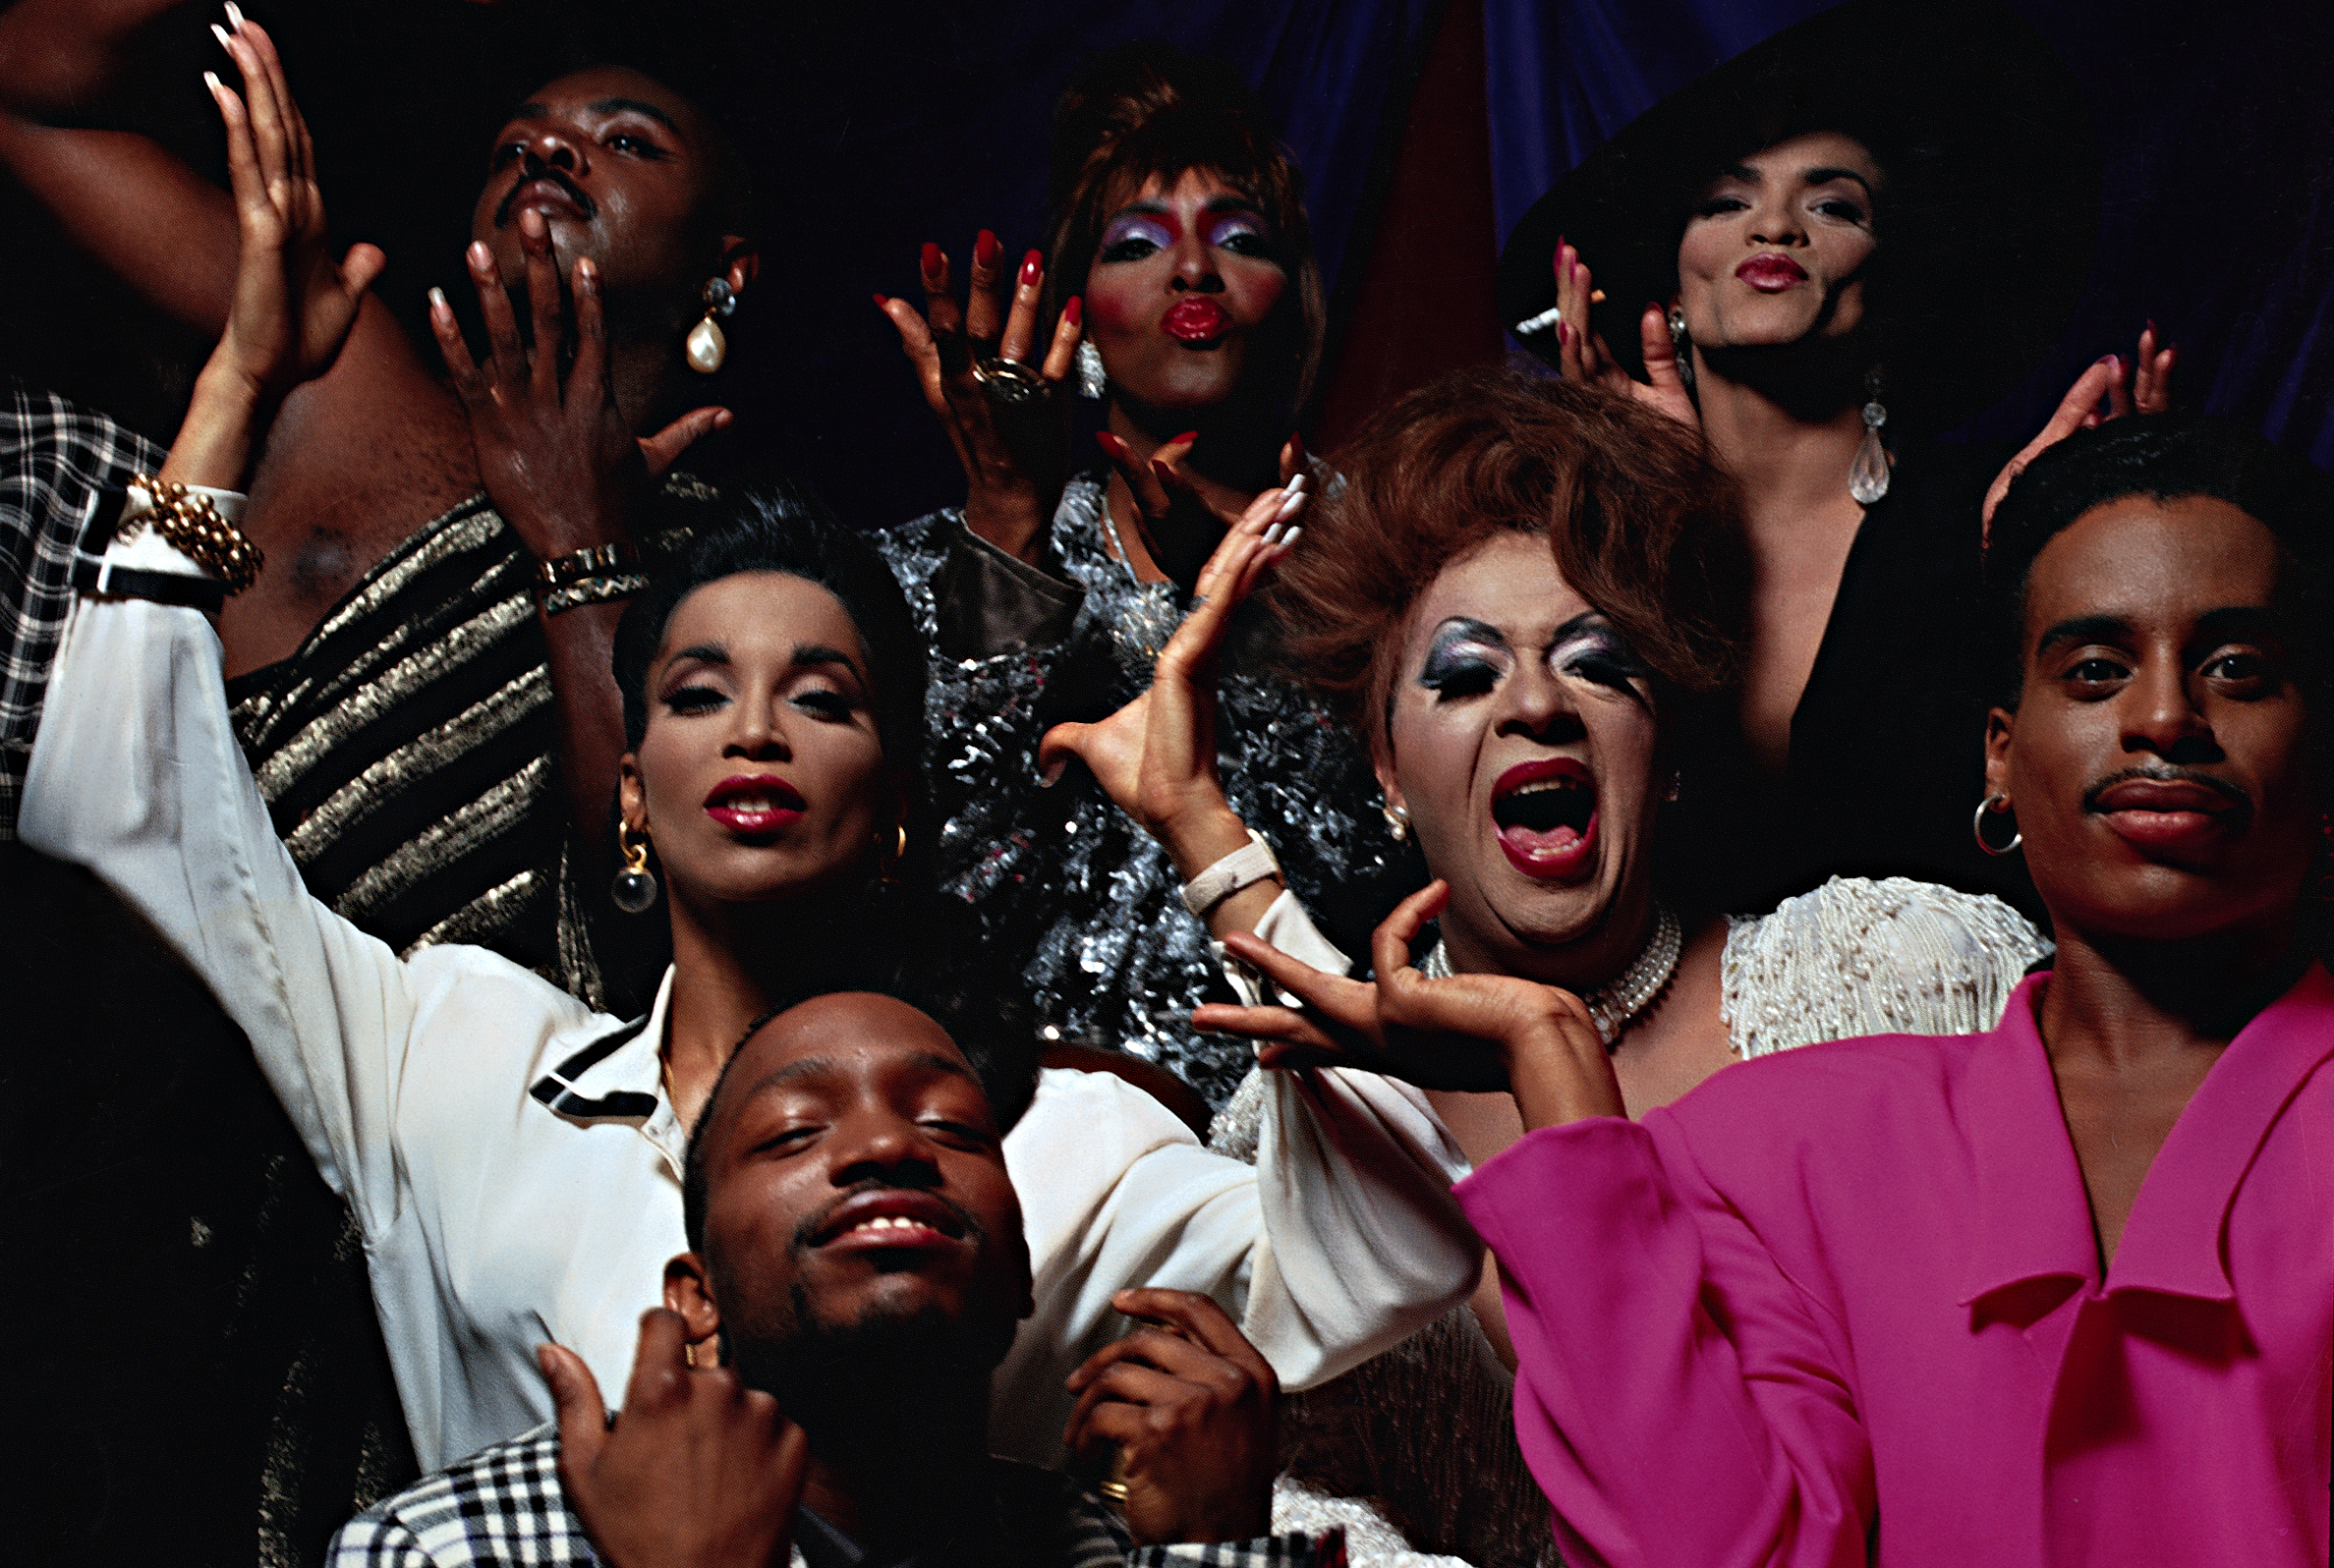 Jennie Livingston, director of the landmark documentary Paris Is Burning, will attend its screening at EIFF